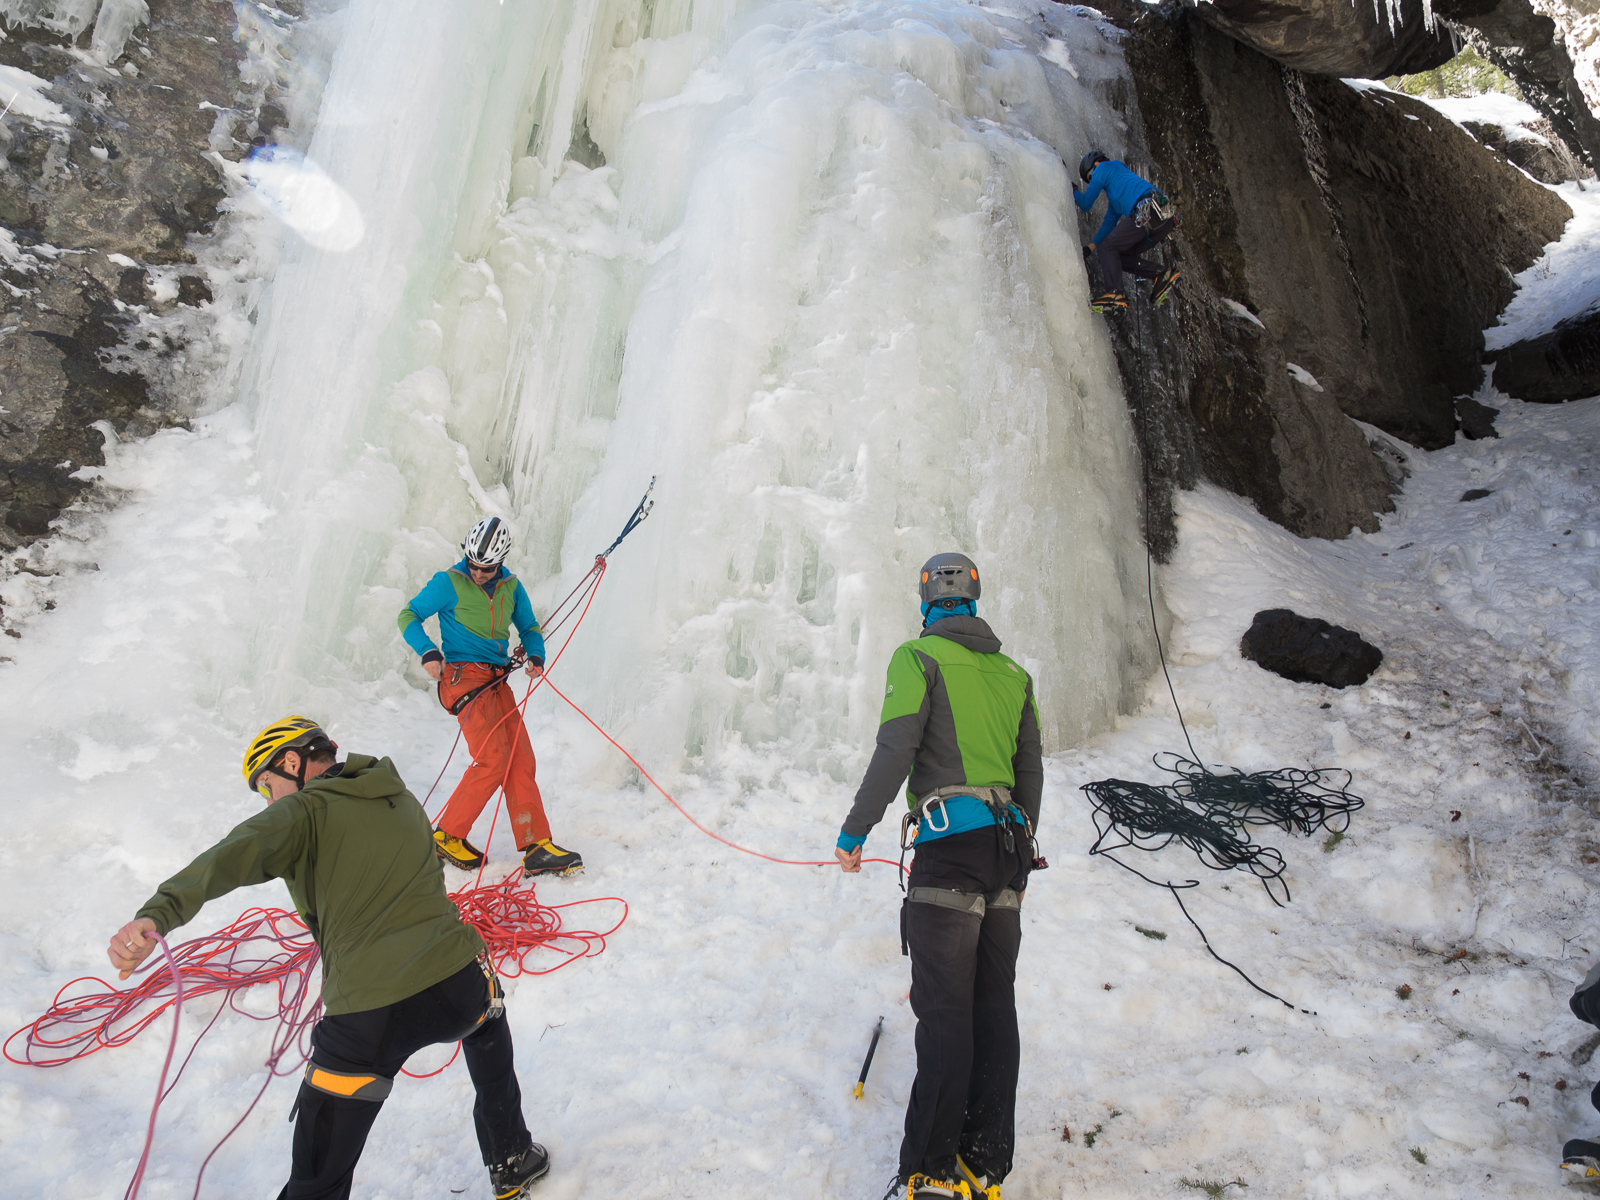 Steve House instructing on belay changeovers, while Vince Anderson heads up the ice to set up a top rope.